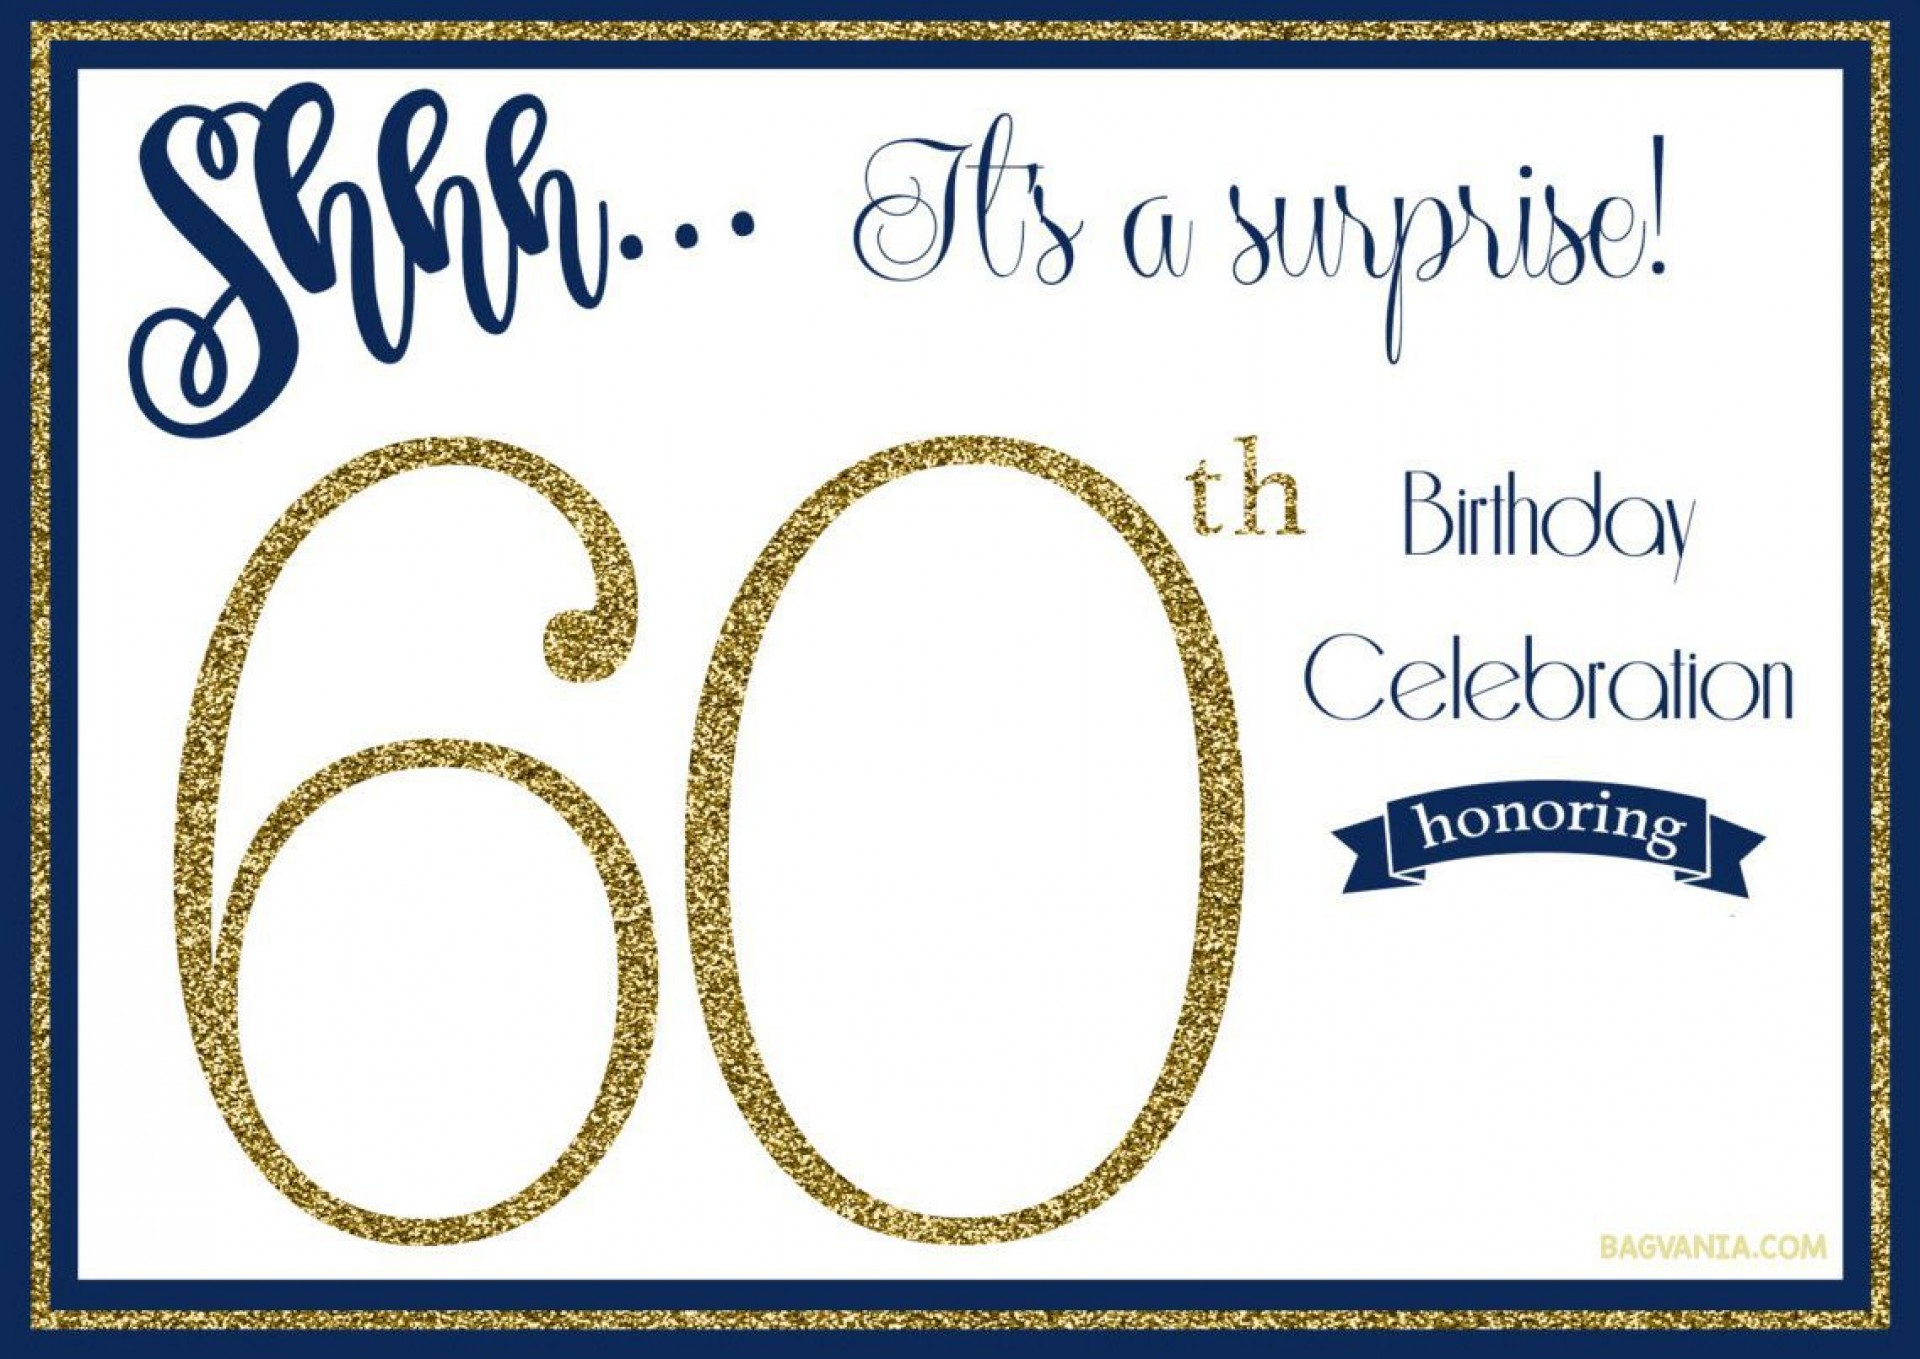 000 Stirring 60th Birthday Invite Template Photo  Templates Funny Invitation Free Party1920